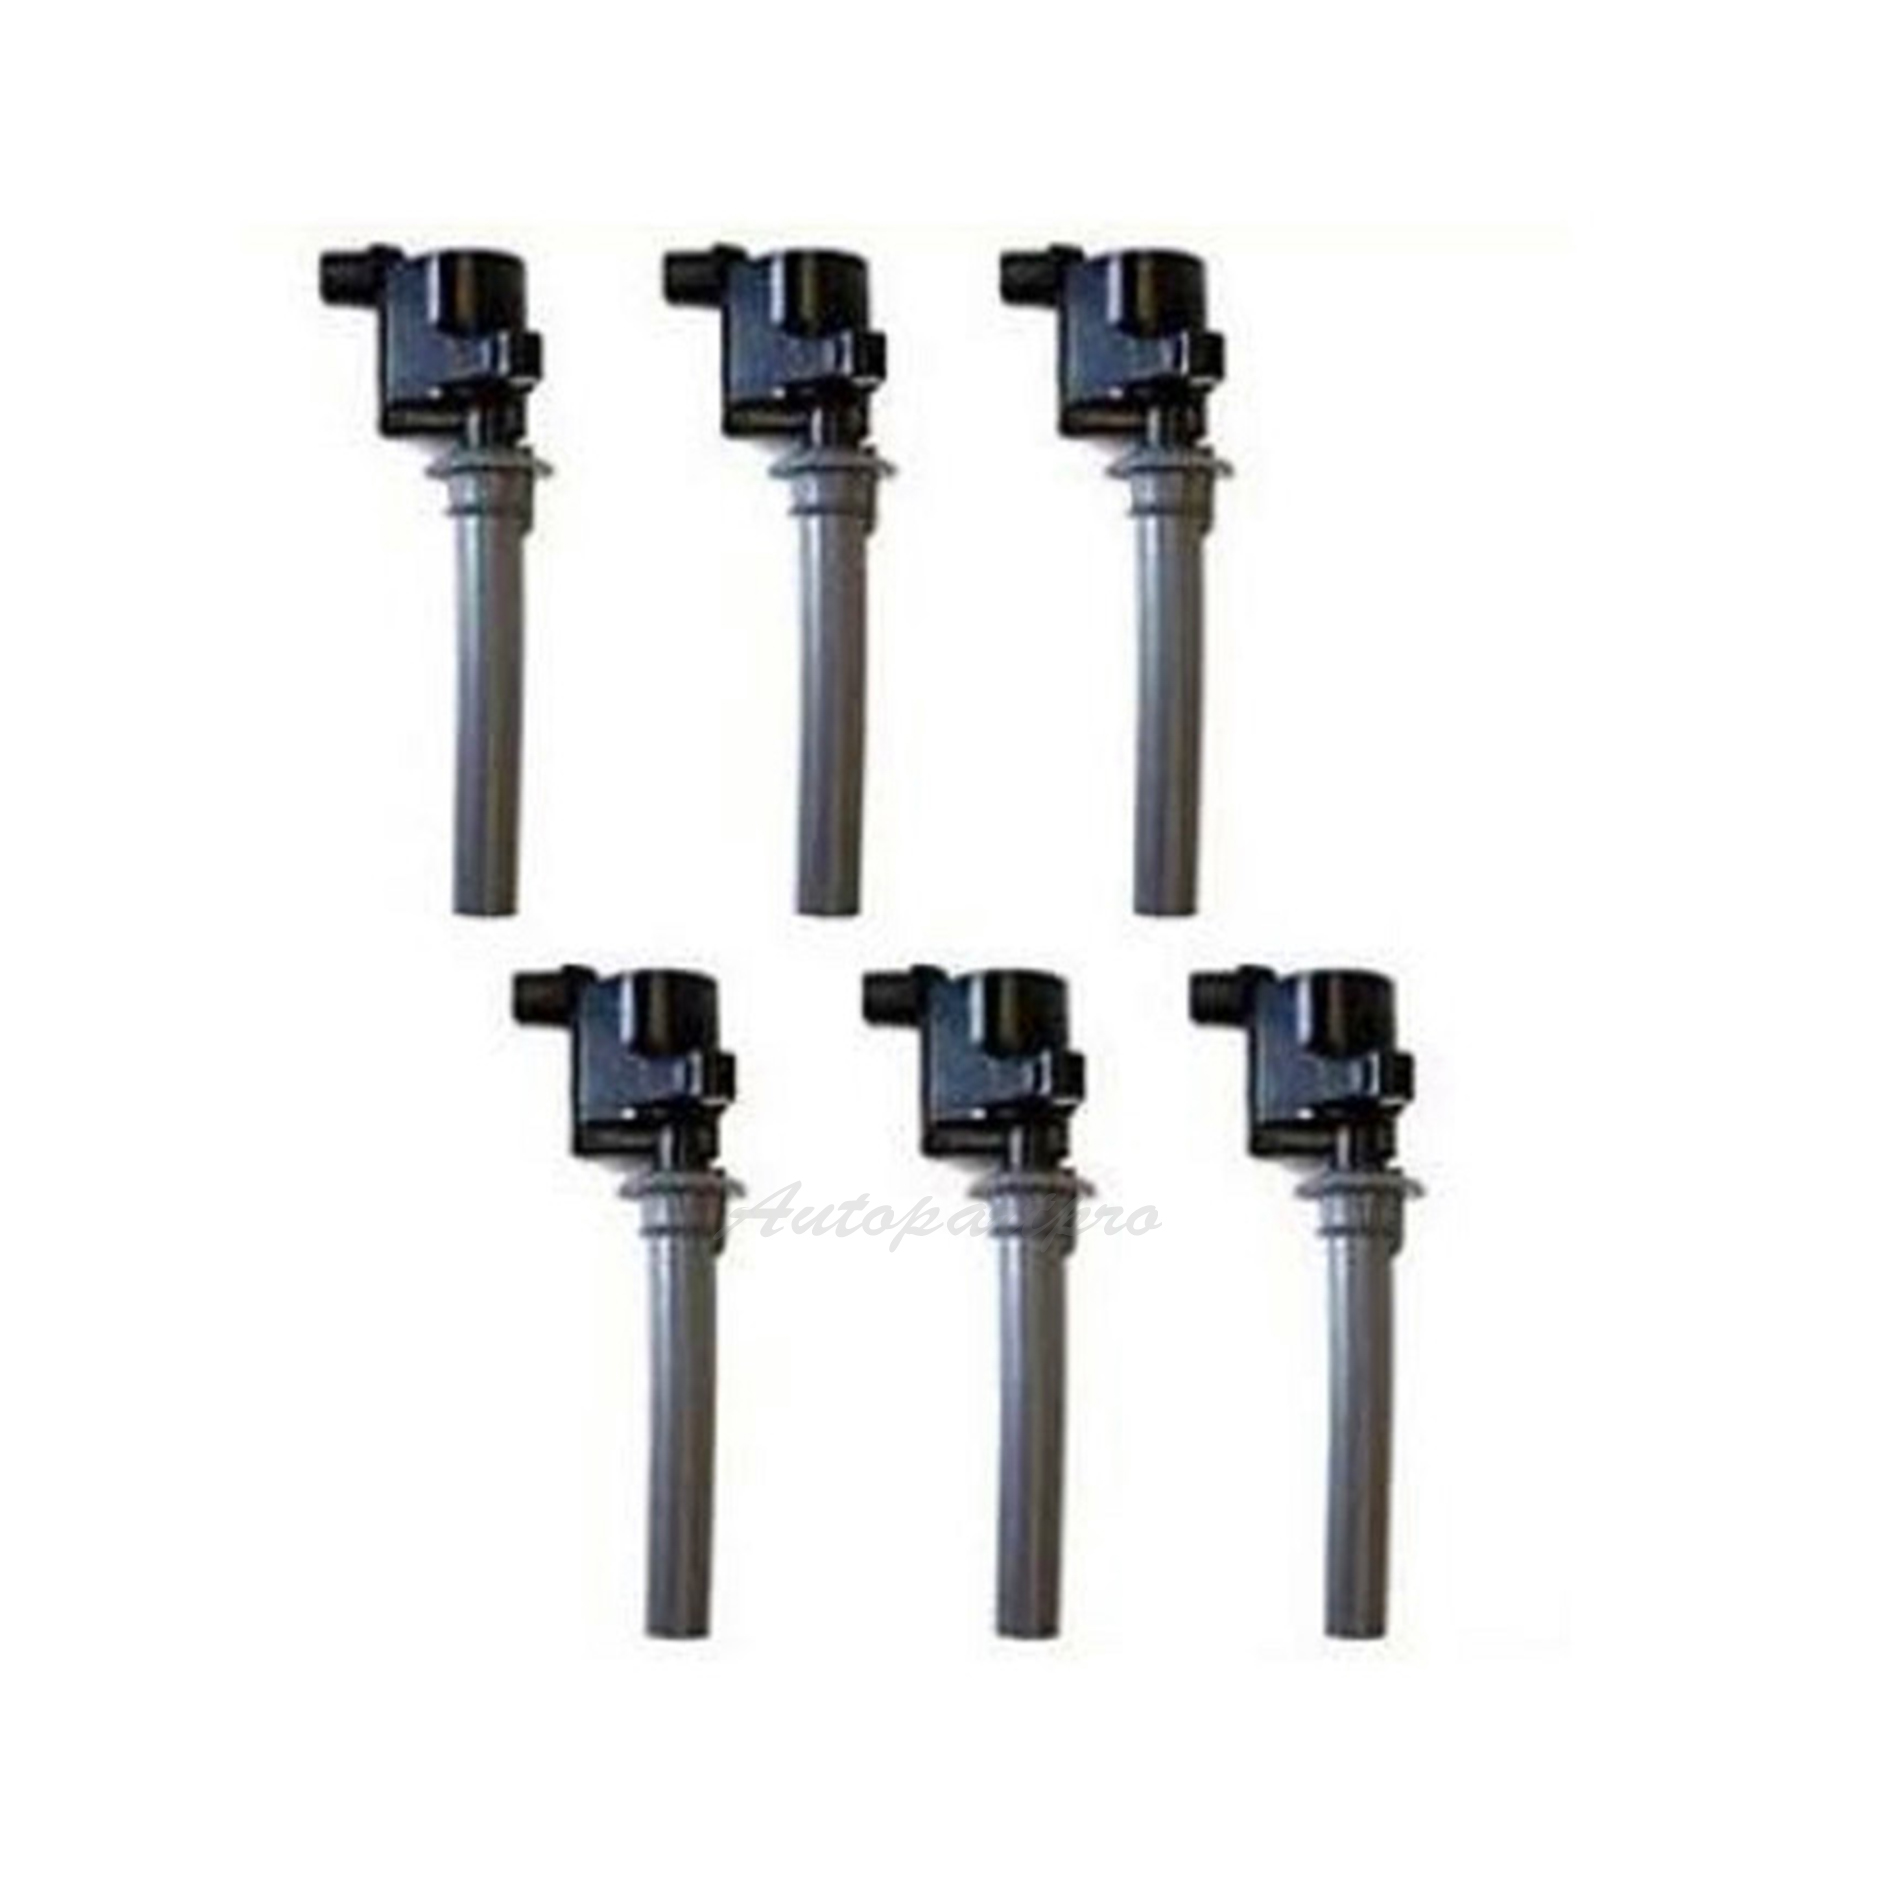 Ic23 Ignition Coil 6pcs For 04 05 06 Mazda